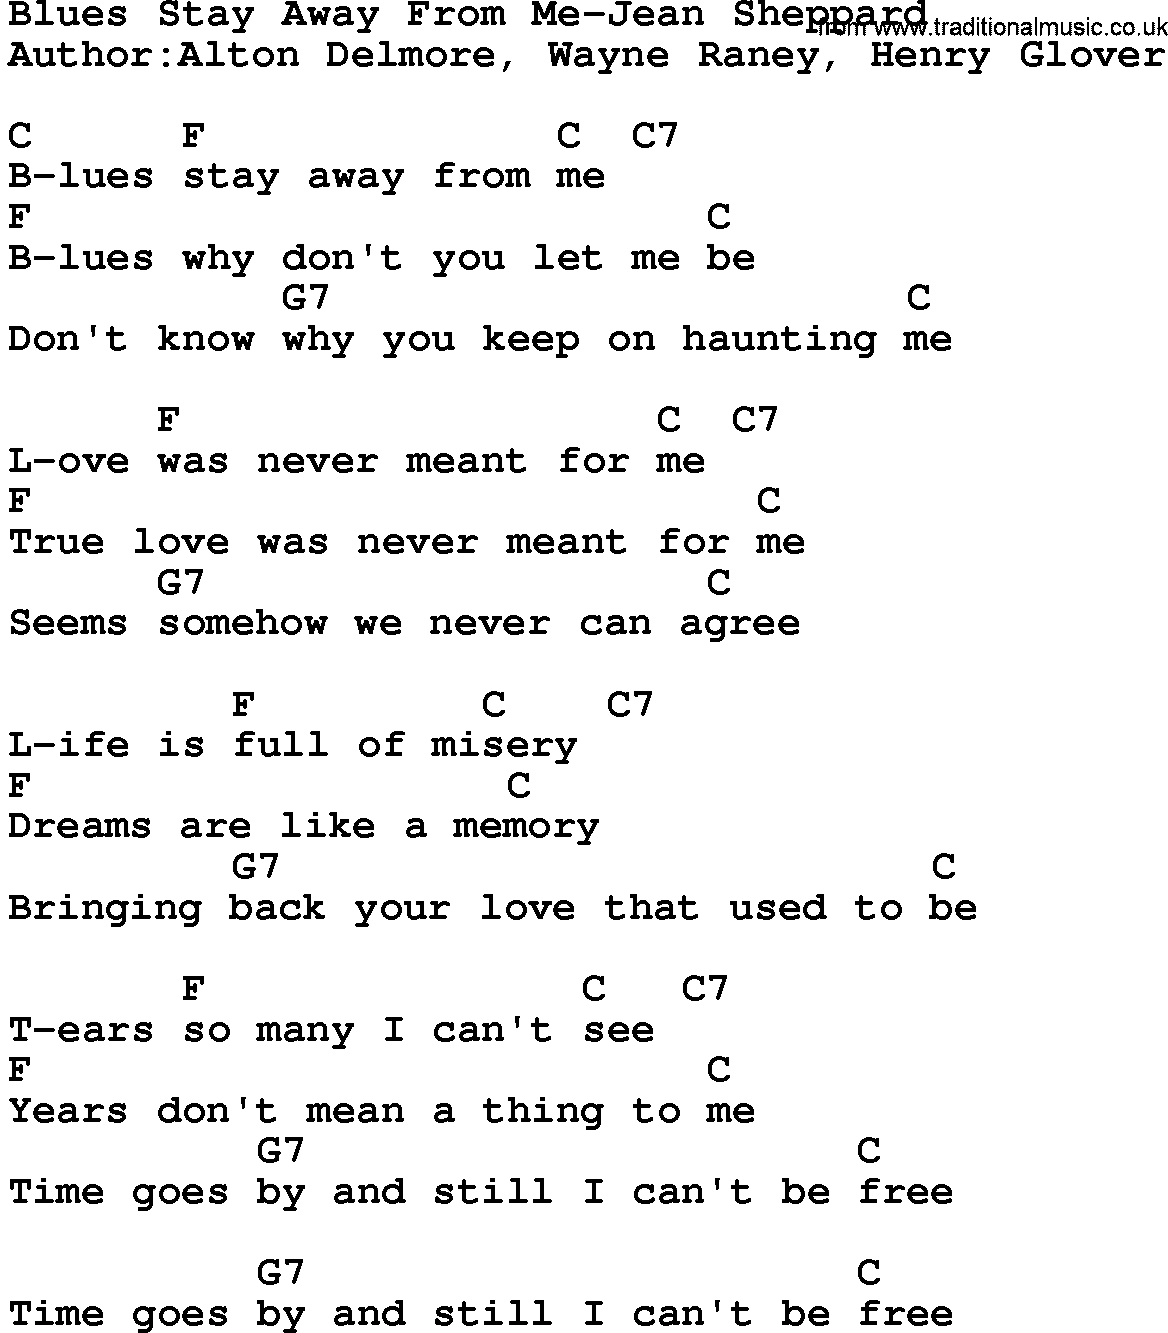 Stay with me ukulele chords google search sheet music stay with me ukulele chords google search hexwebz Images